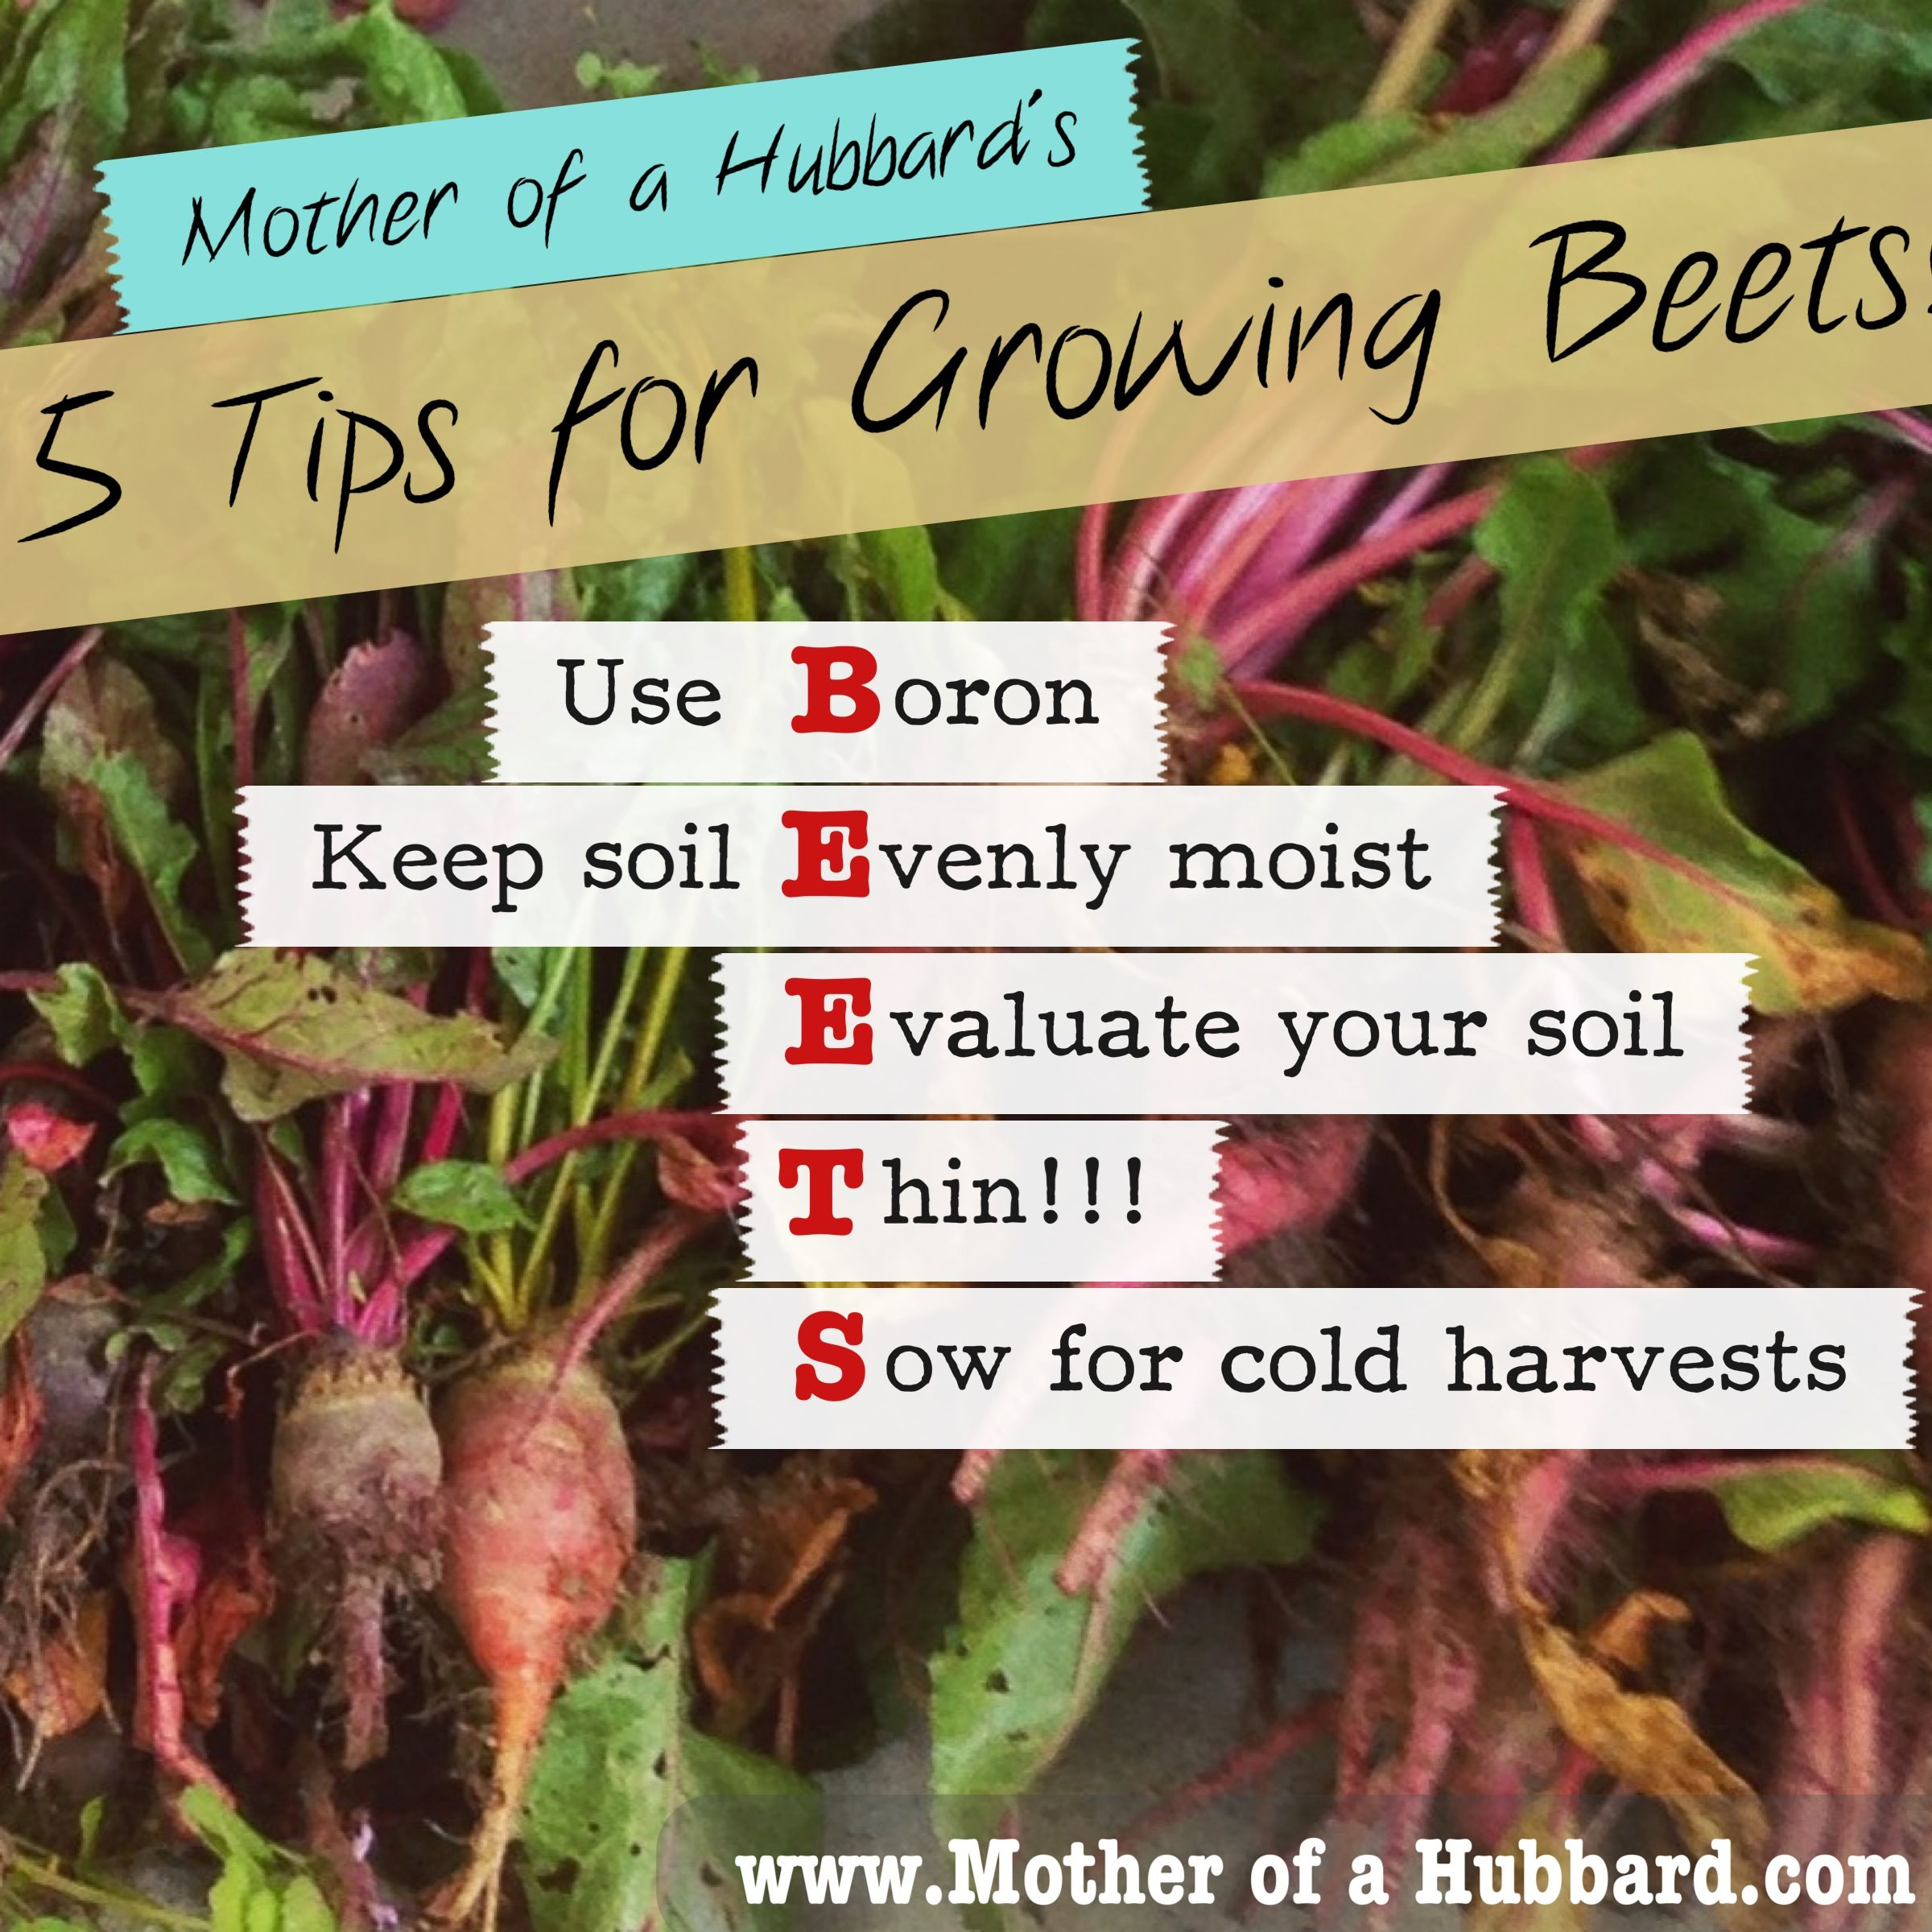 Rhubarb Companion Plants: The Secret To Growing Beets: Five Tips For Success